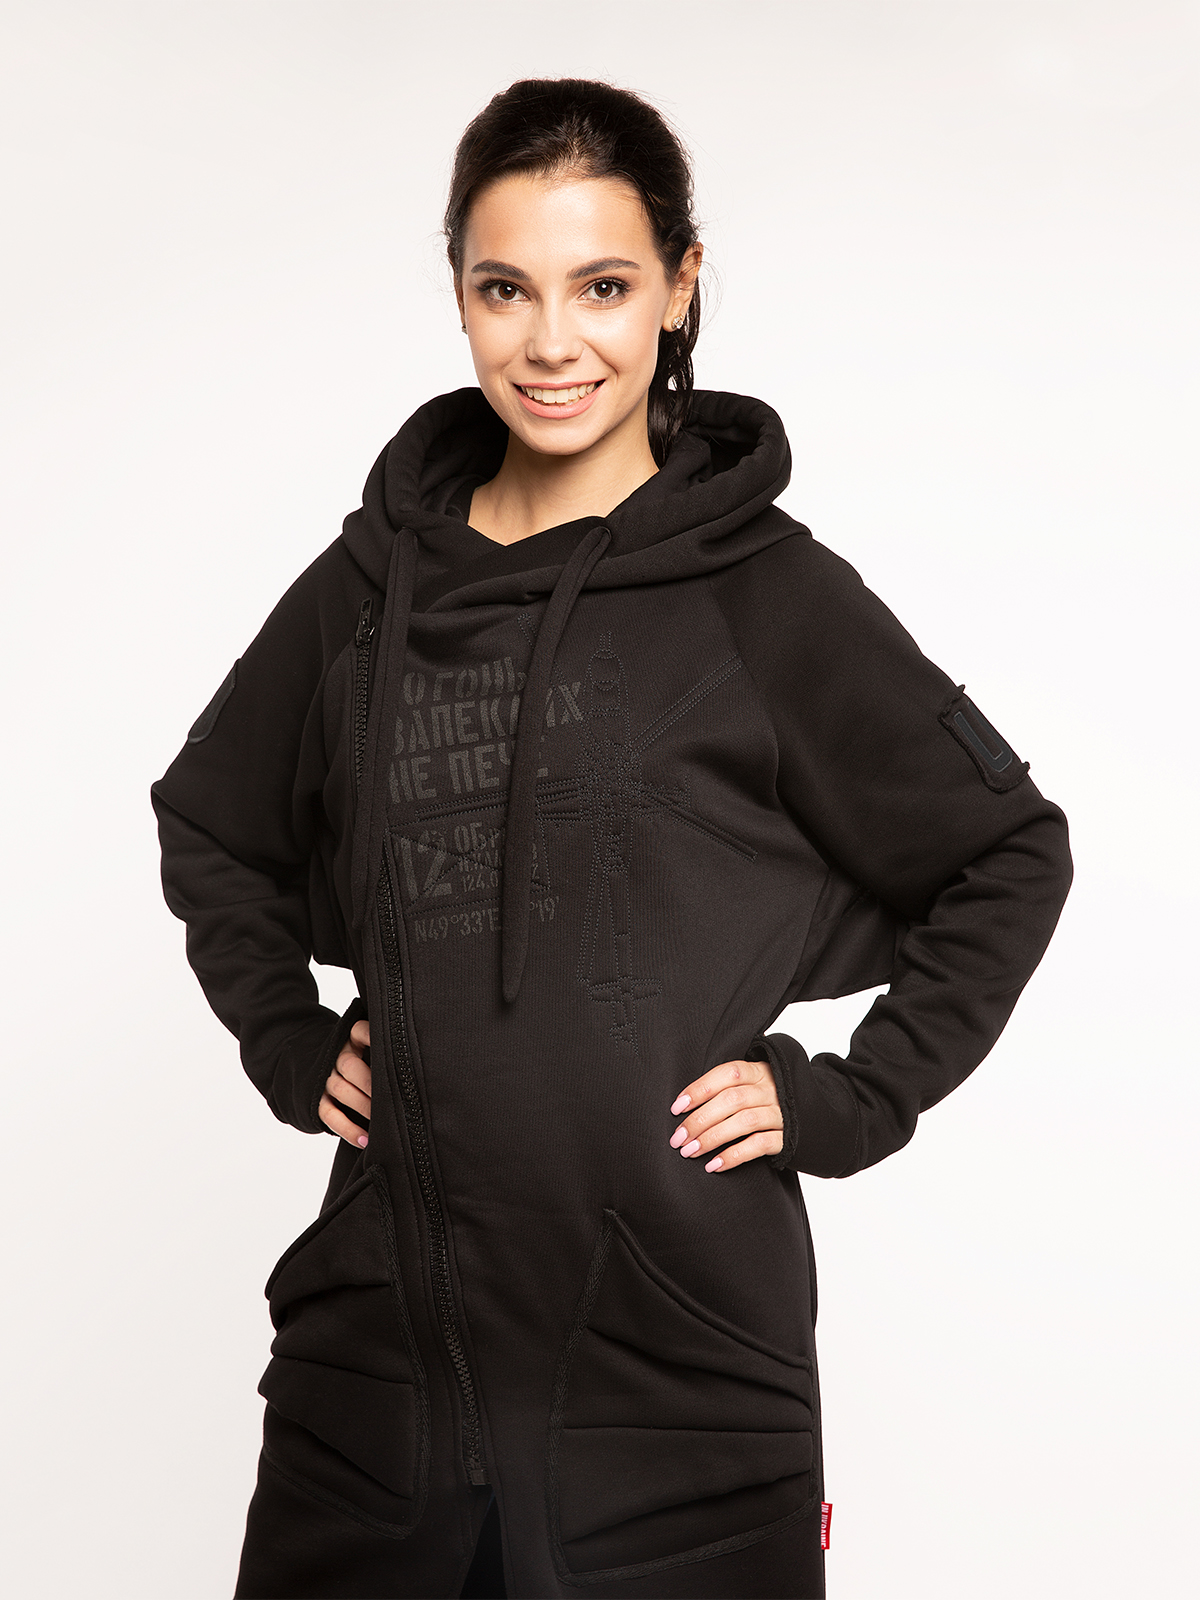 Women's Hoodie Dragon. Color black.  Don't worry about the universal size.